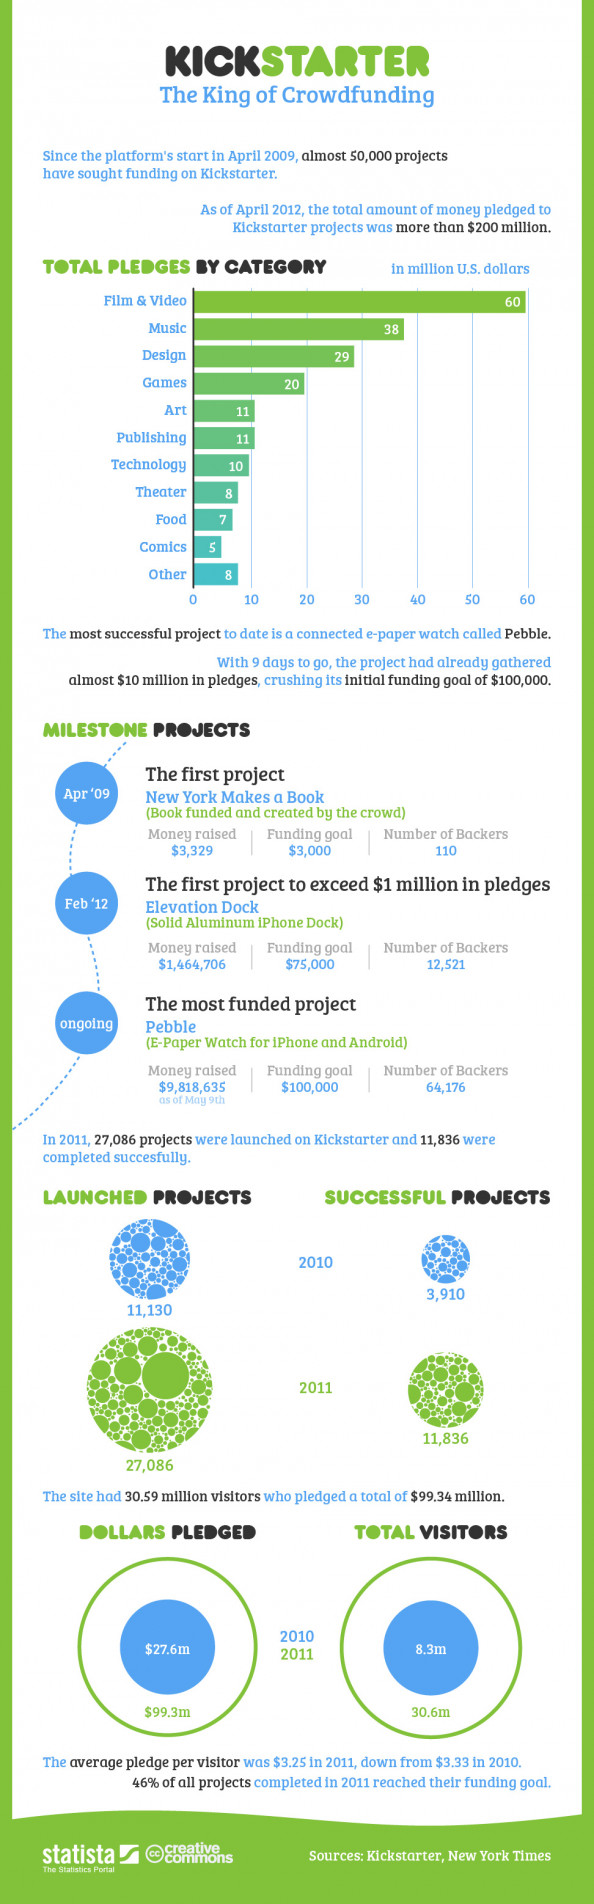 Kickstarter - King of Crowdfunding Infographic